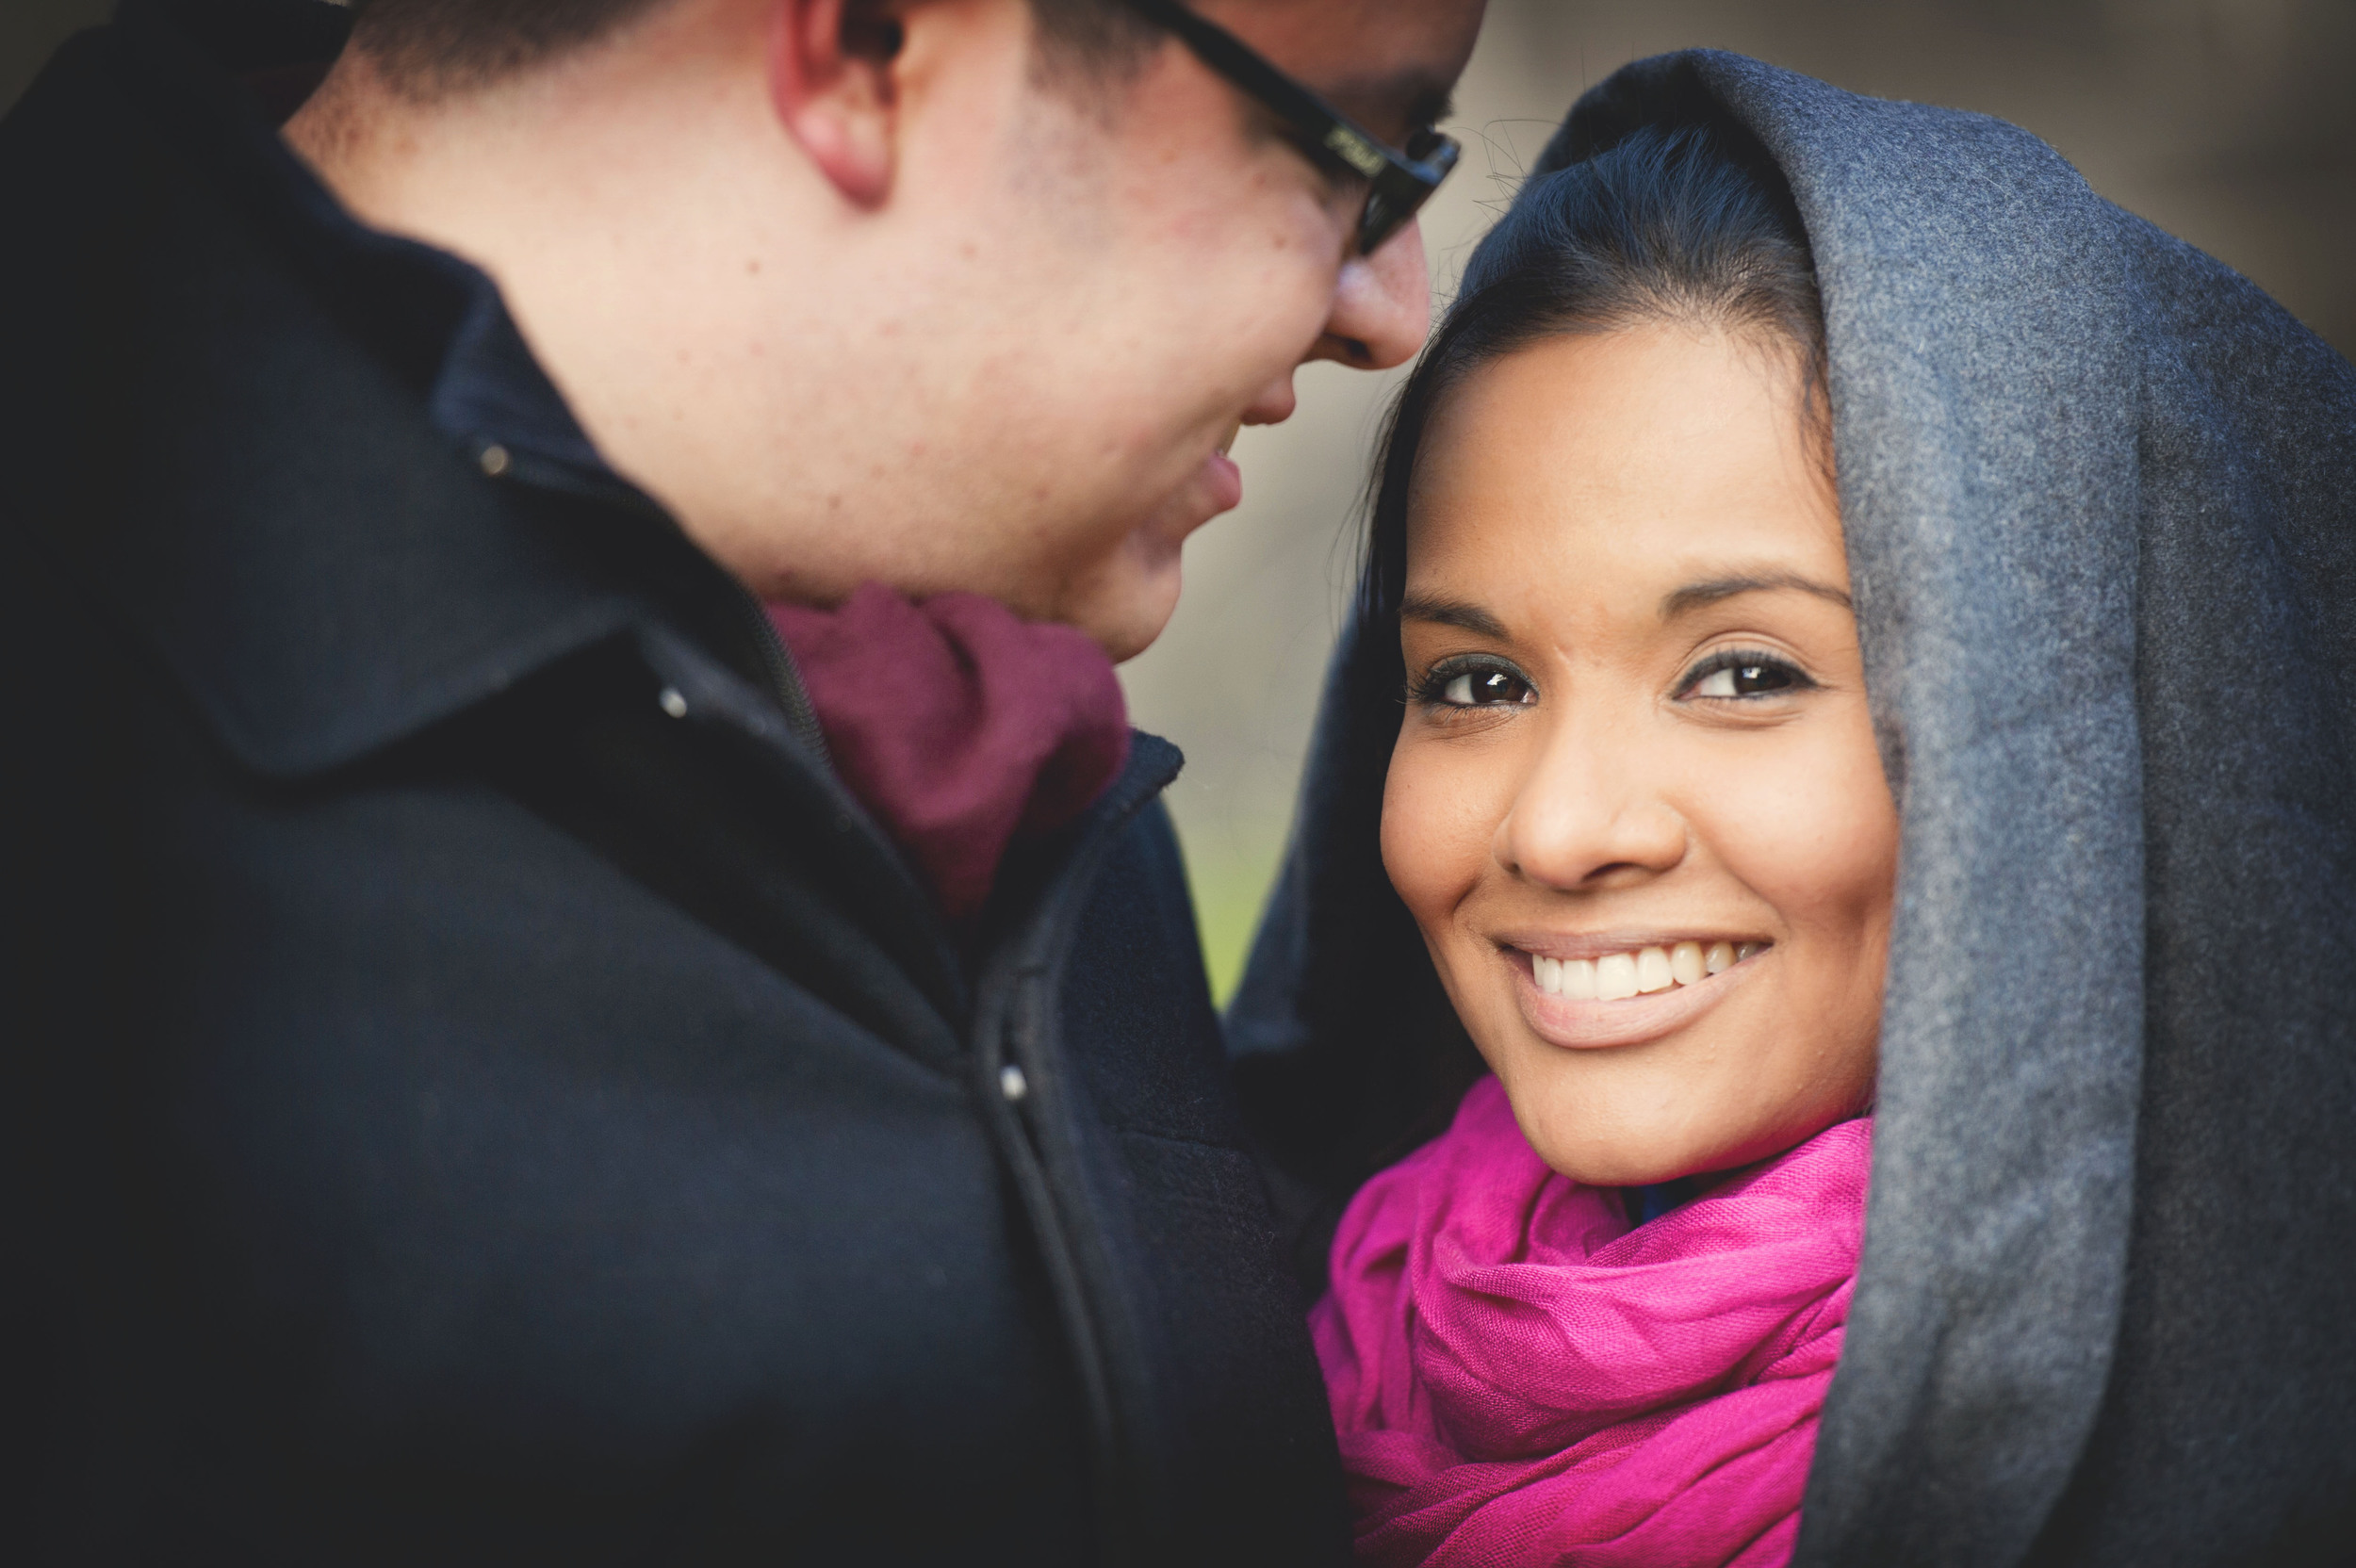 Engagement photos give couples the chance to capture this monumental time in their lives